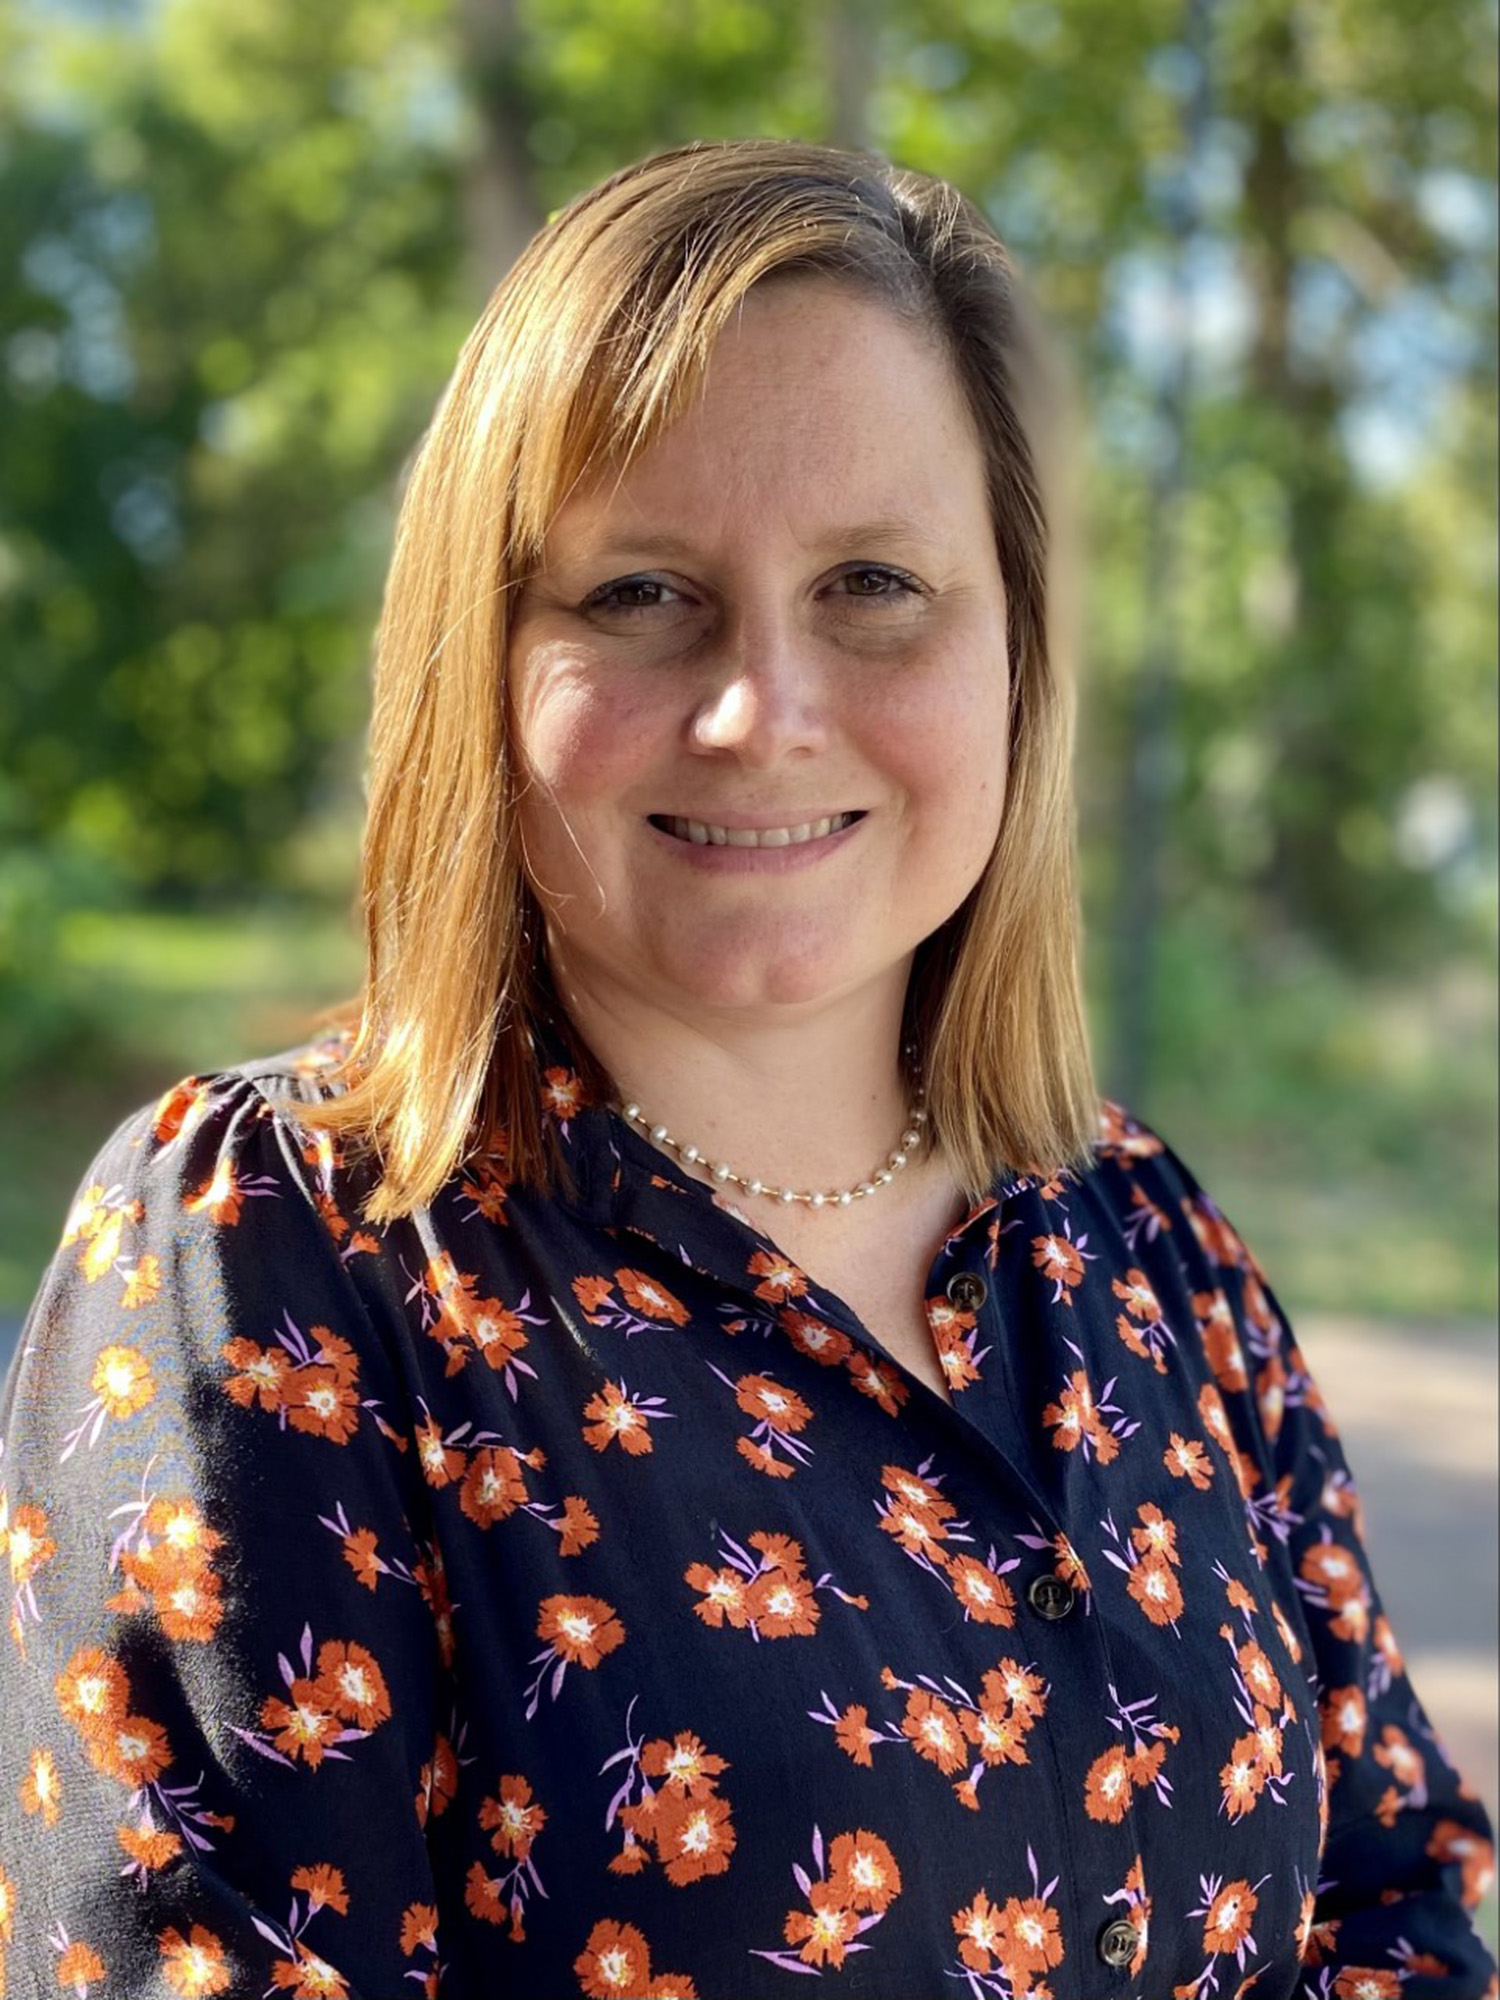 Mendon Public Library Introduces New Library Director Lyla Grills